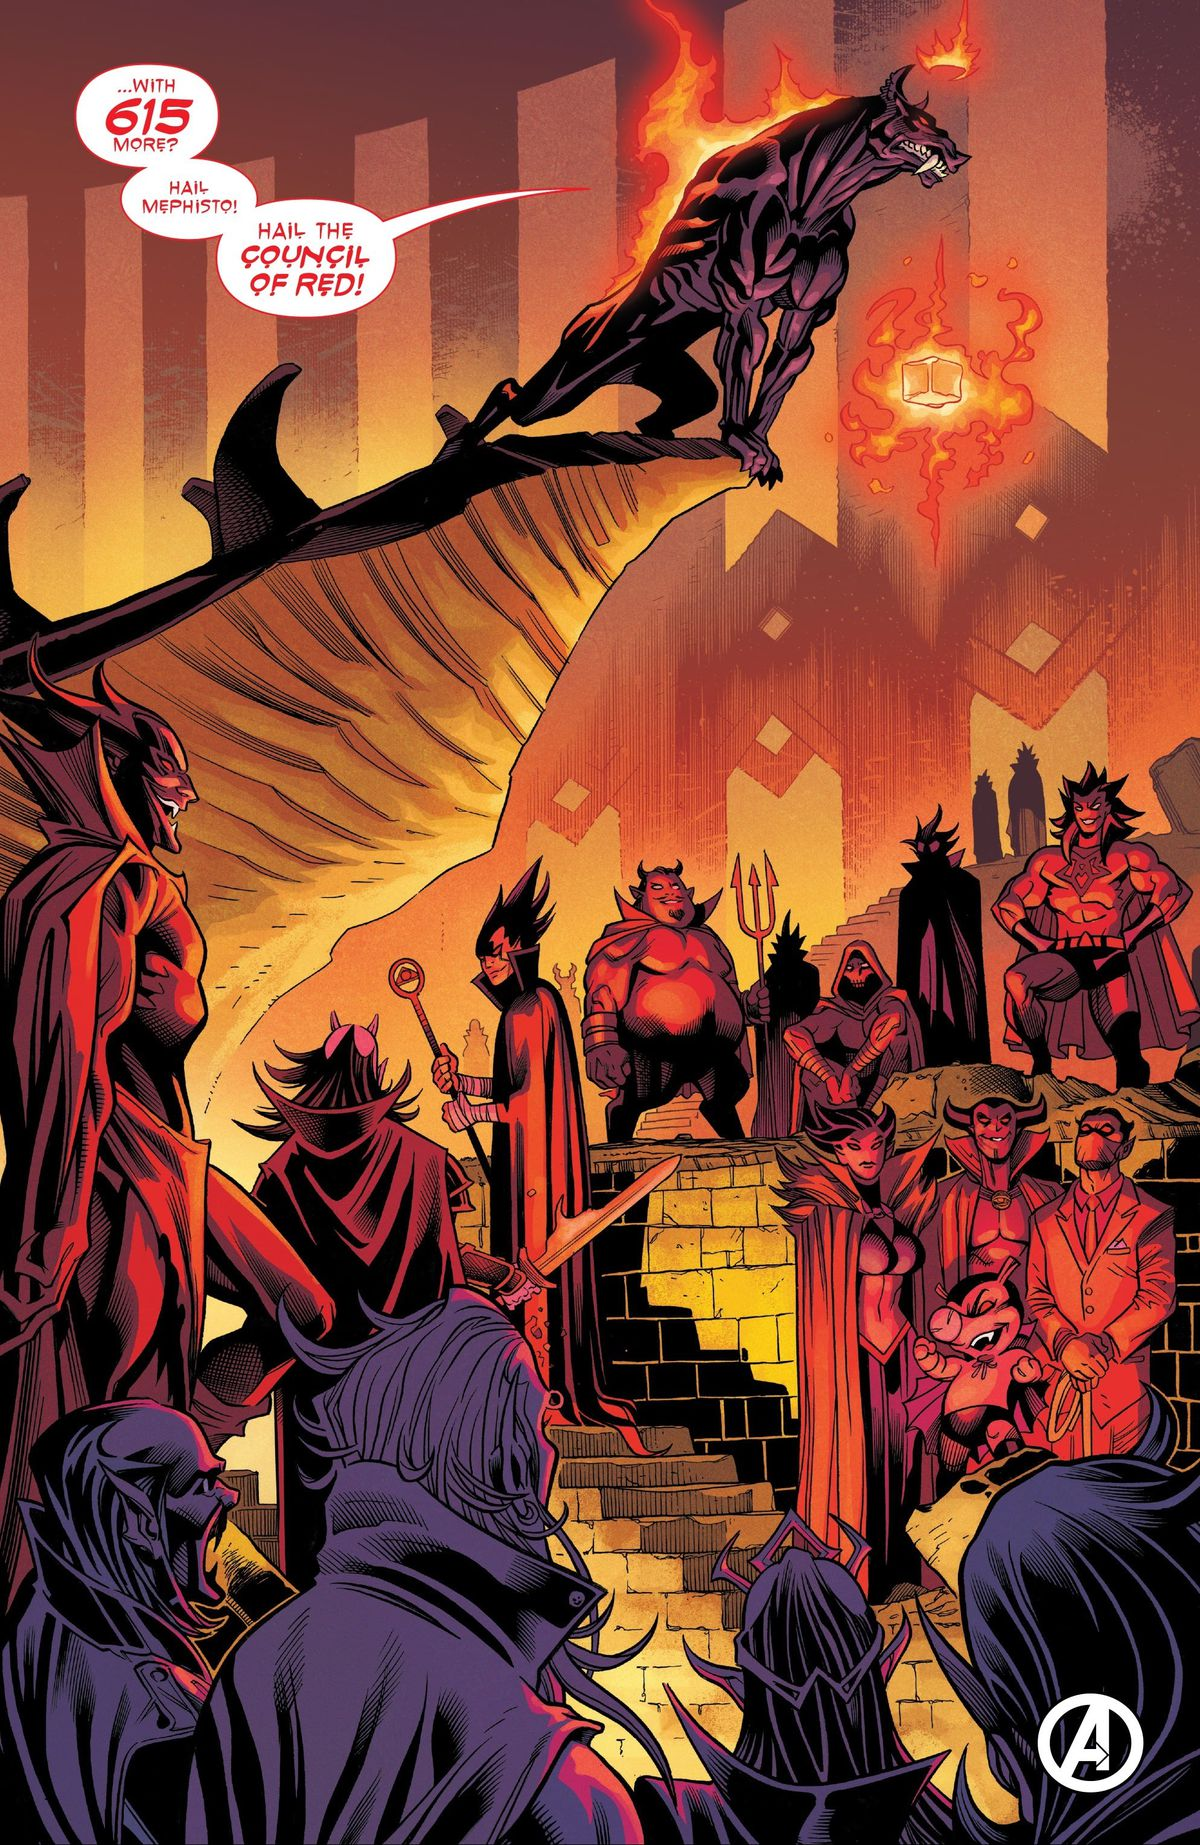 Mephisto, in the form of a hellhound, welcomes 615 alternate universe Mephistos to the Council of Red in Heroes Return #1 (2021).